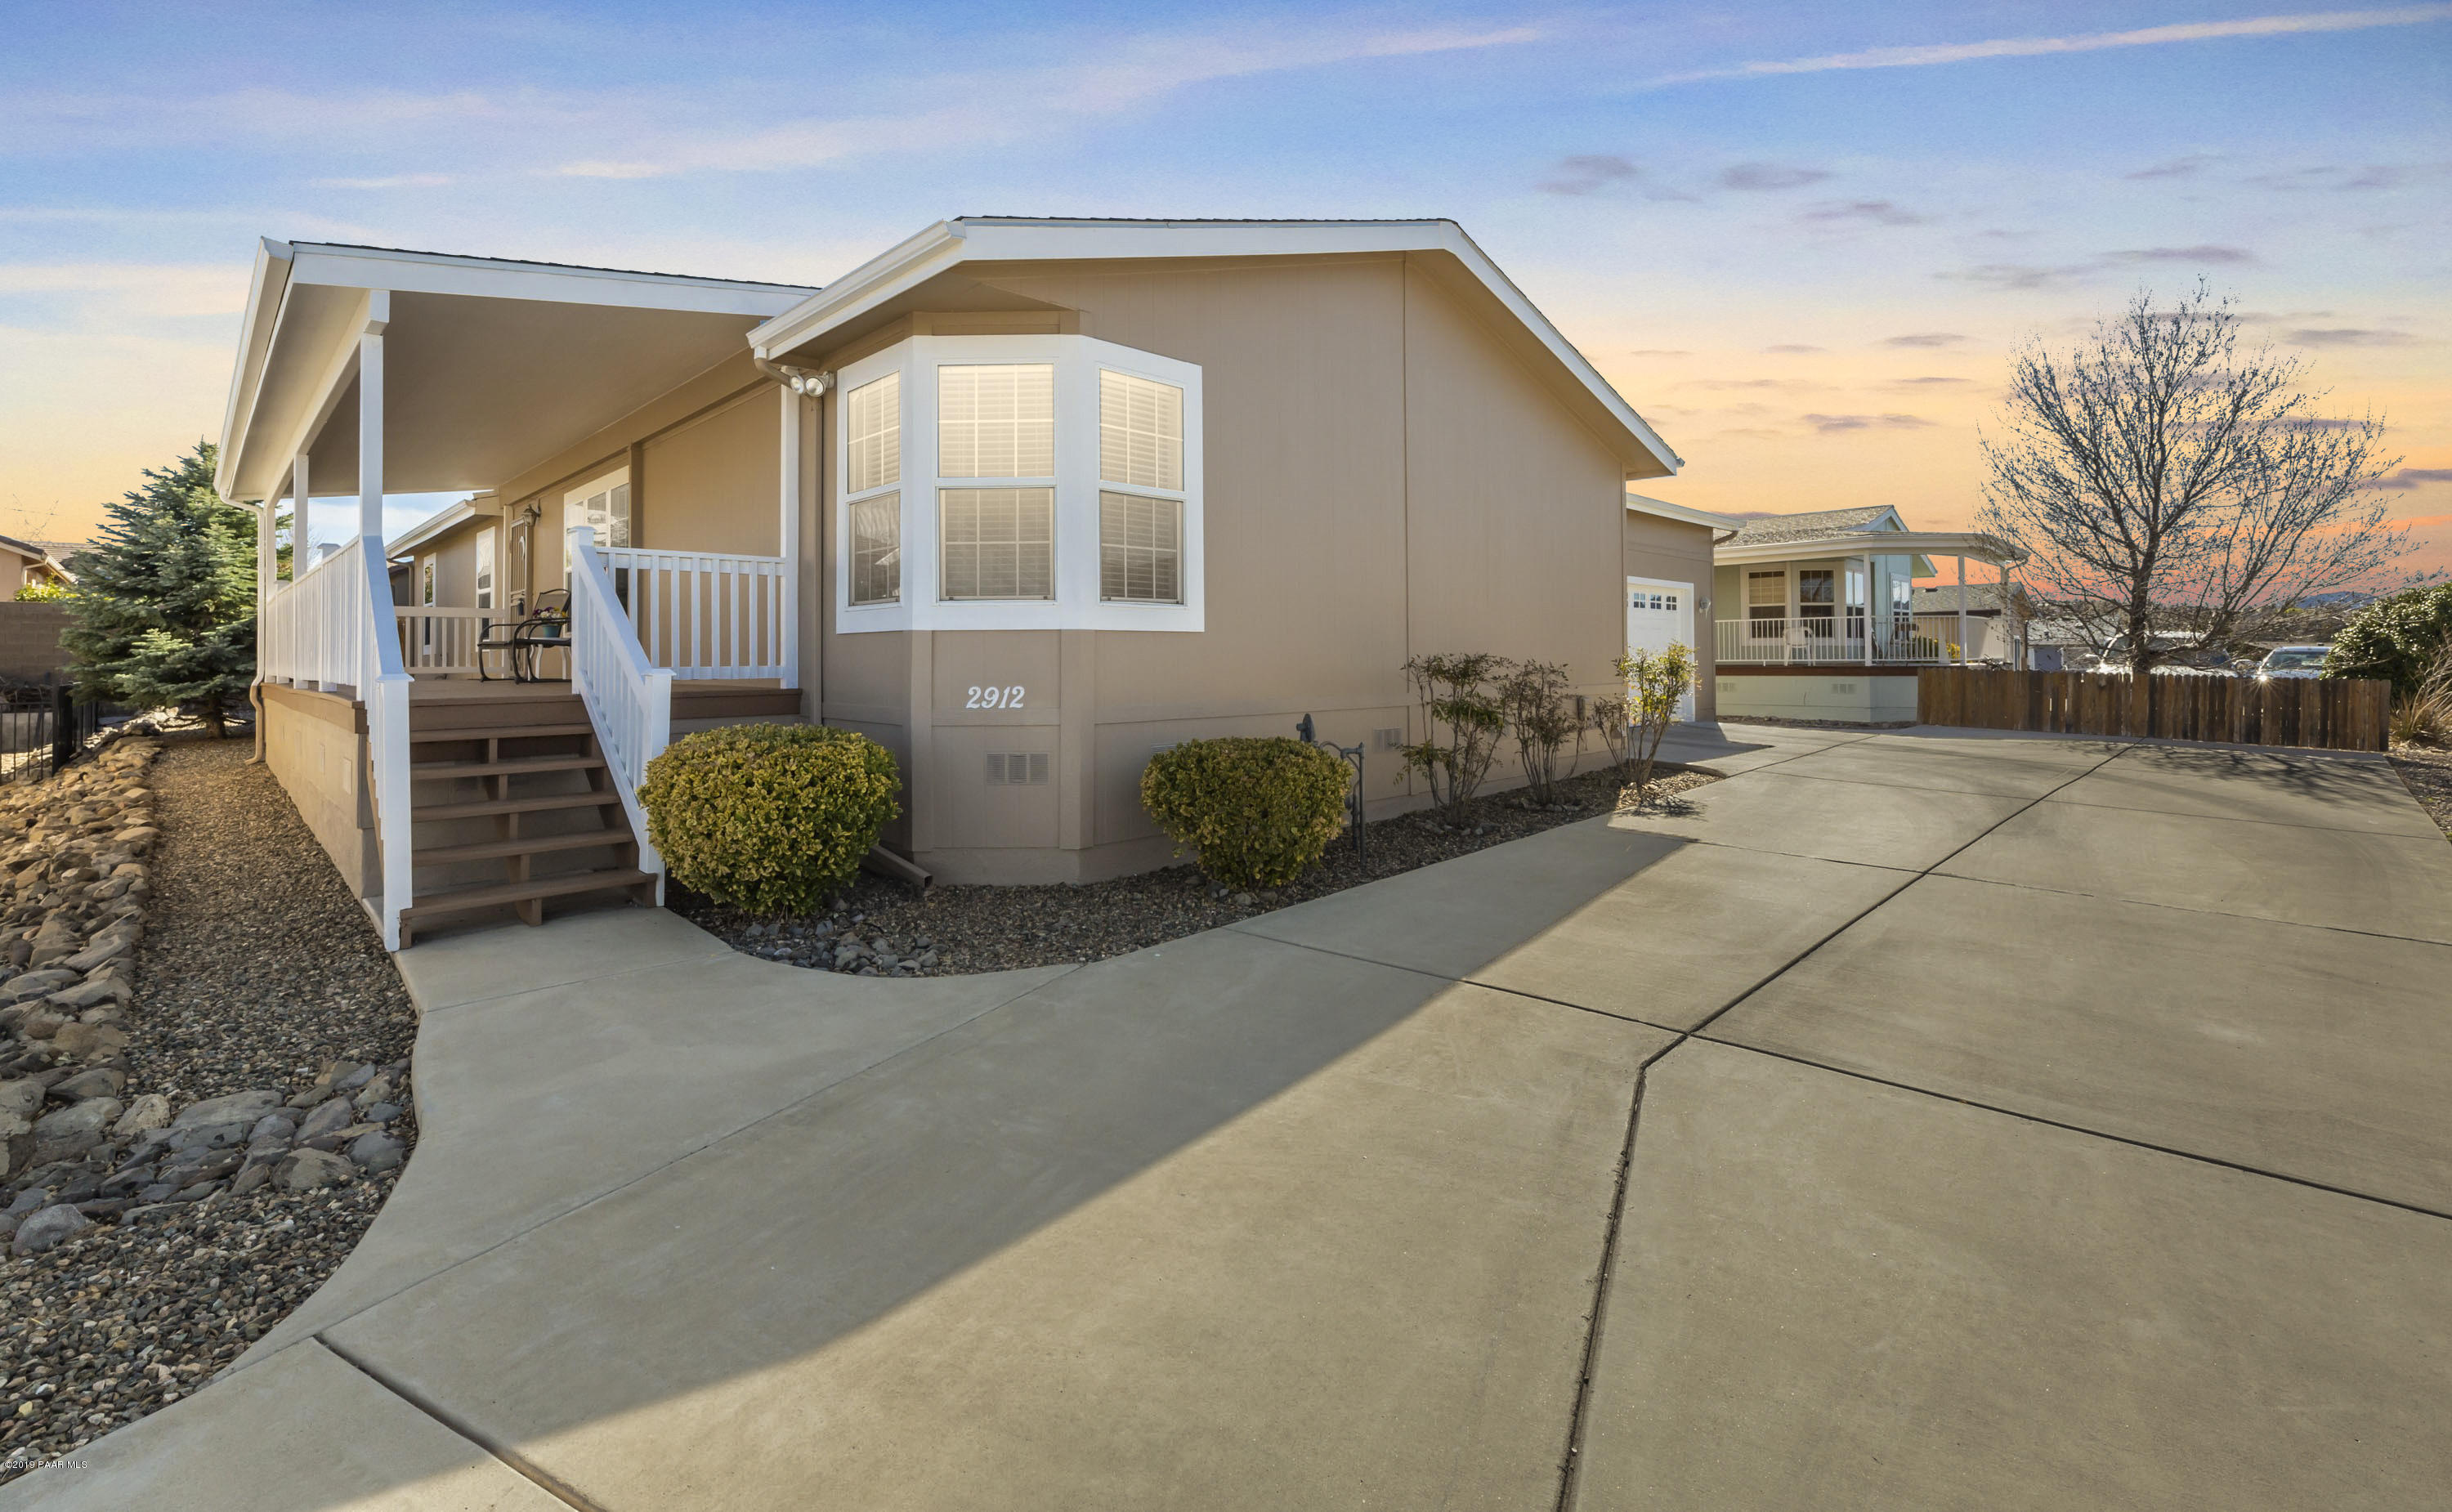 2912 Vinny Drive Prescott Joe Karcie Featured Properties for Sale Prescott AZ Real Estate - Joe Karcie REALTOR RE/MAX Mountain Properties Your Source for Buying and Selling Real Estate in the Prescott Area.